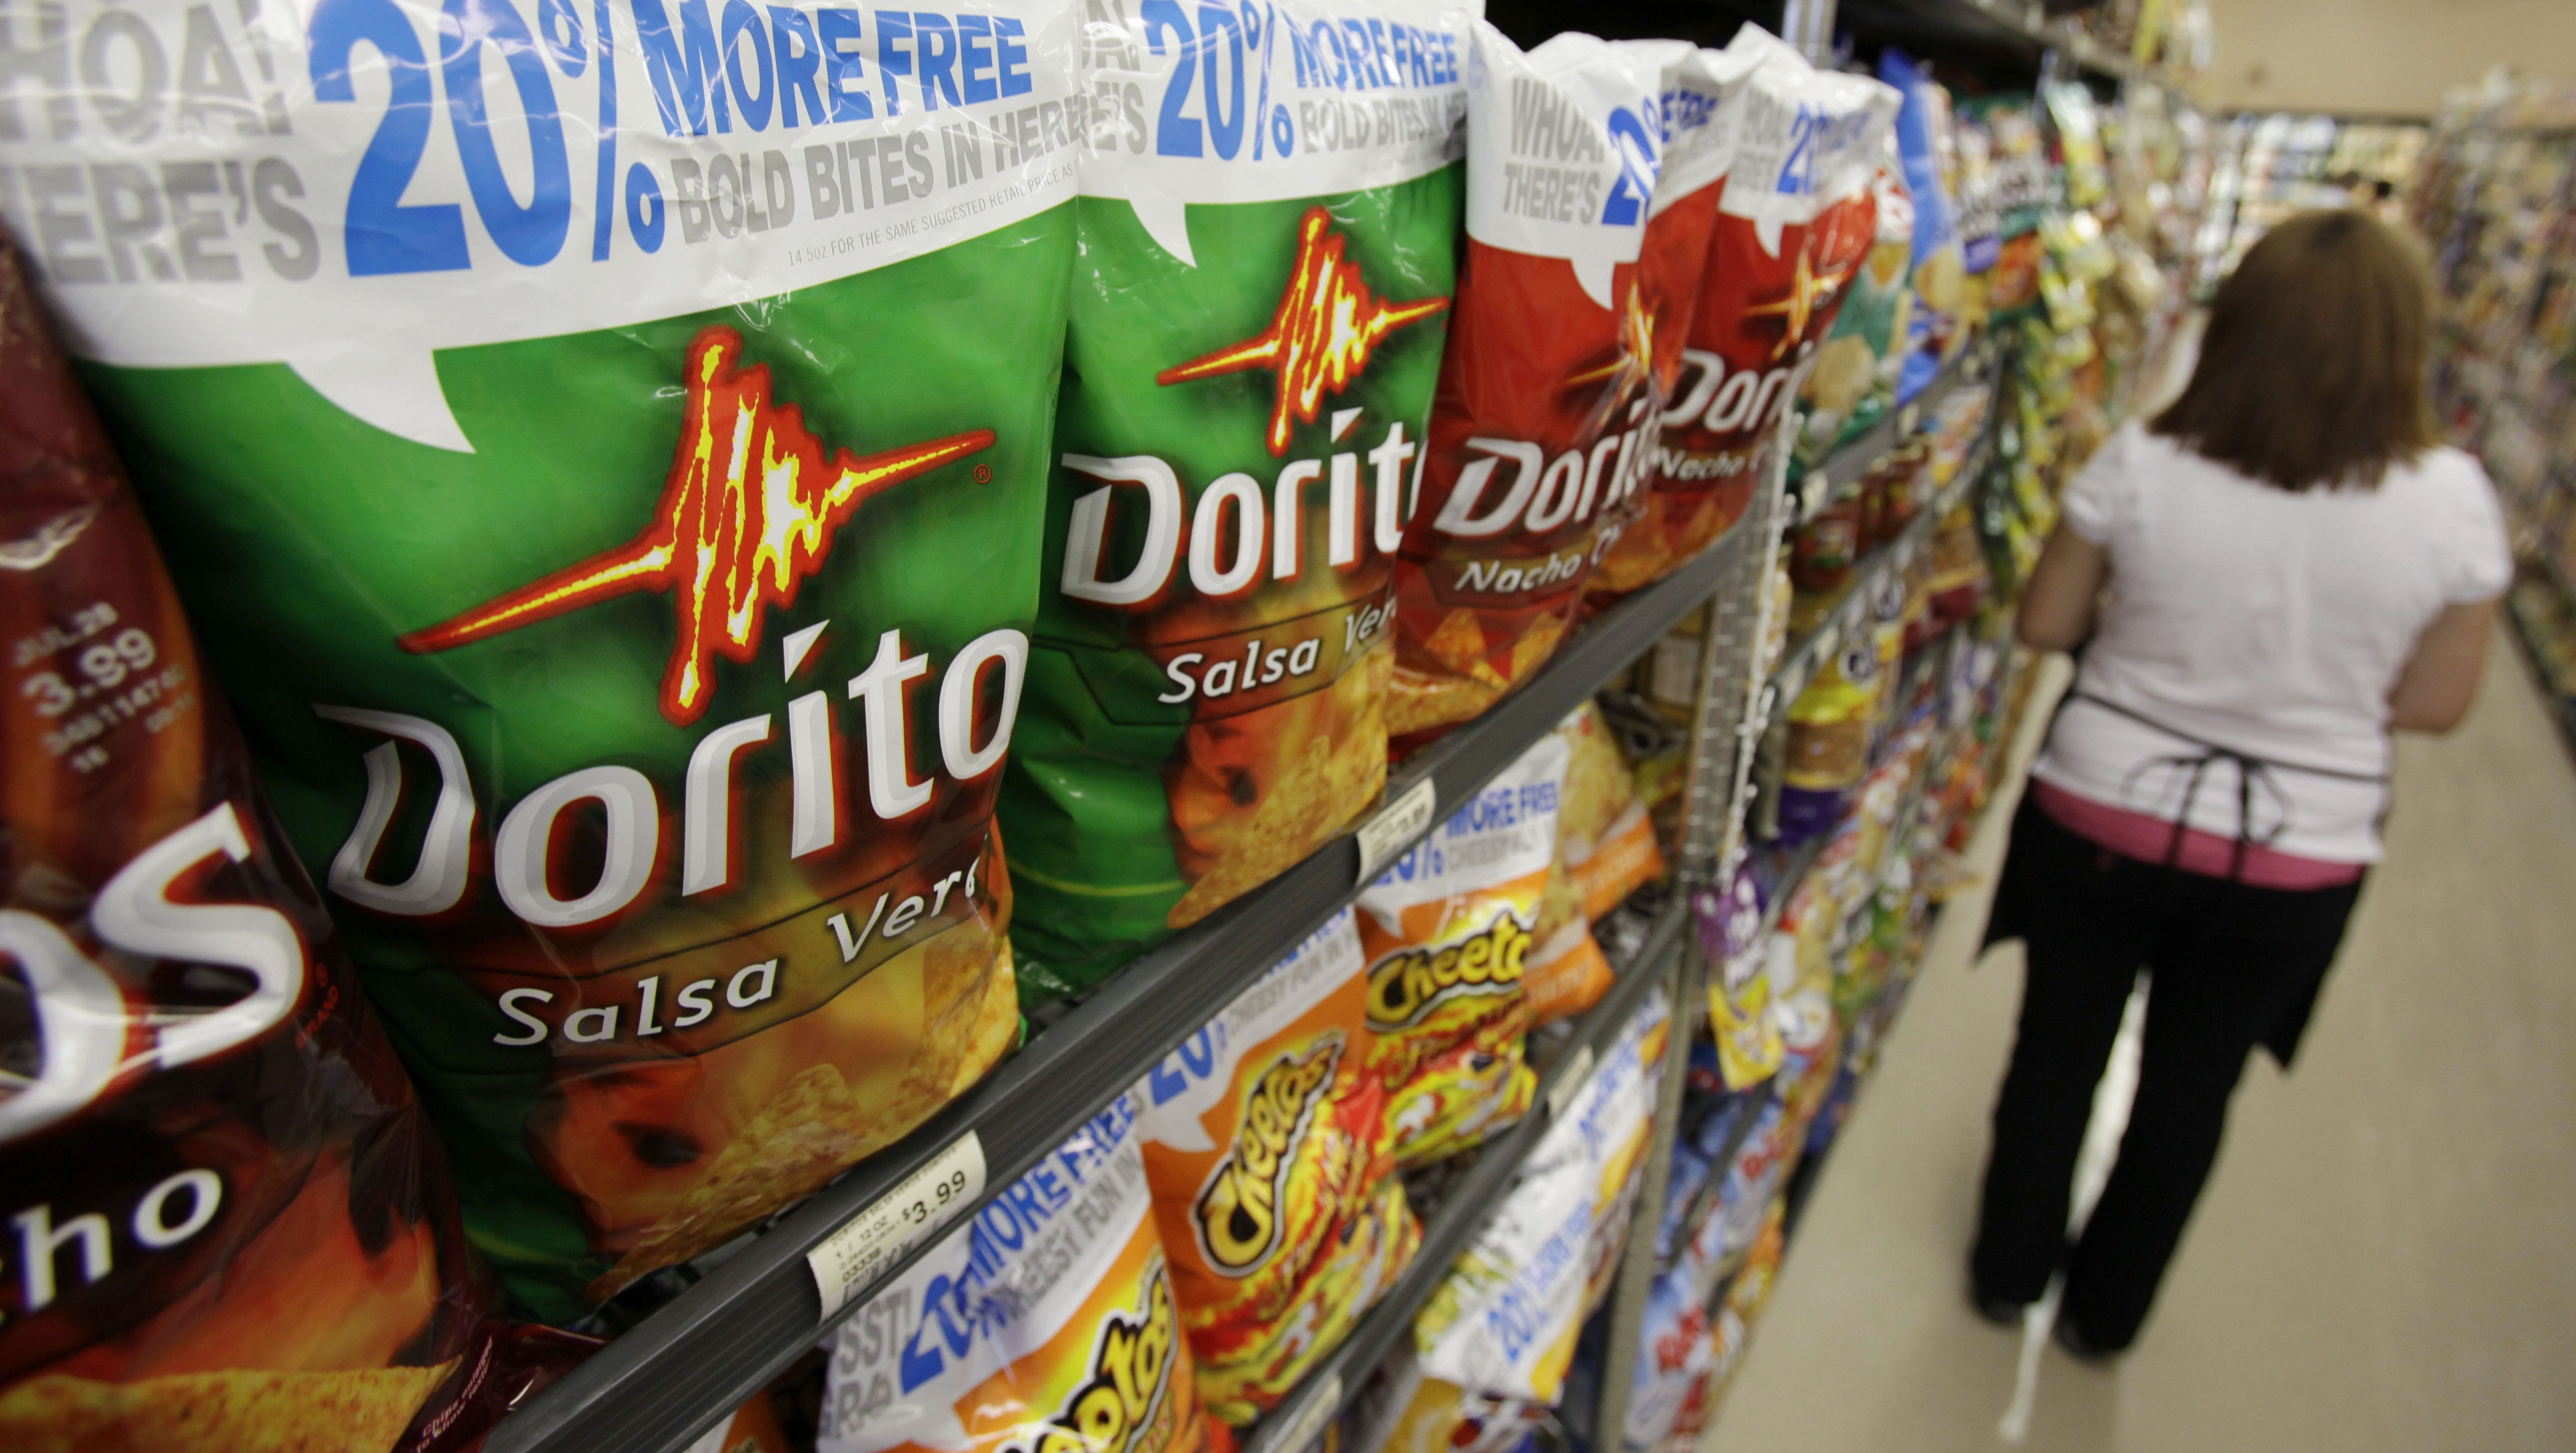 Doritos chips are seen on display at a market in Palo Alto, Calif., Tuesday, July 21, 2009.